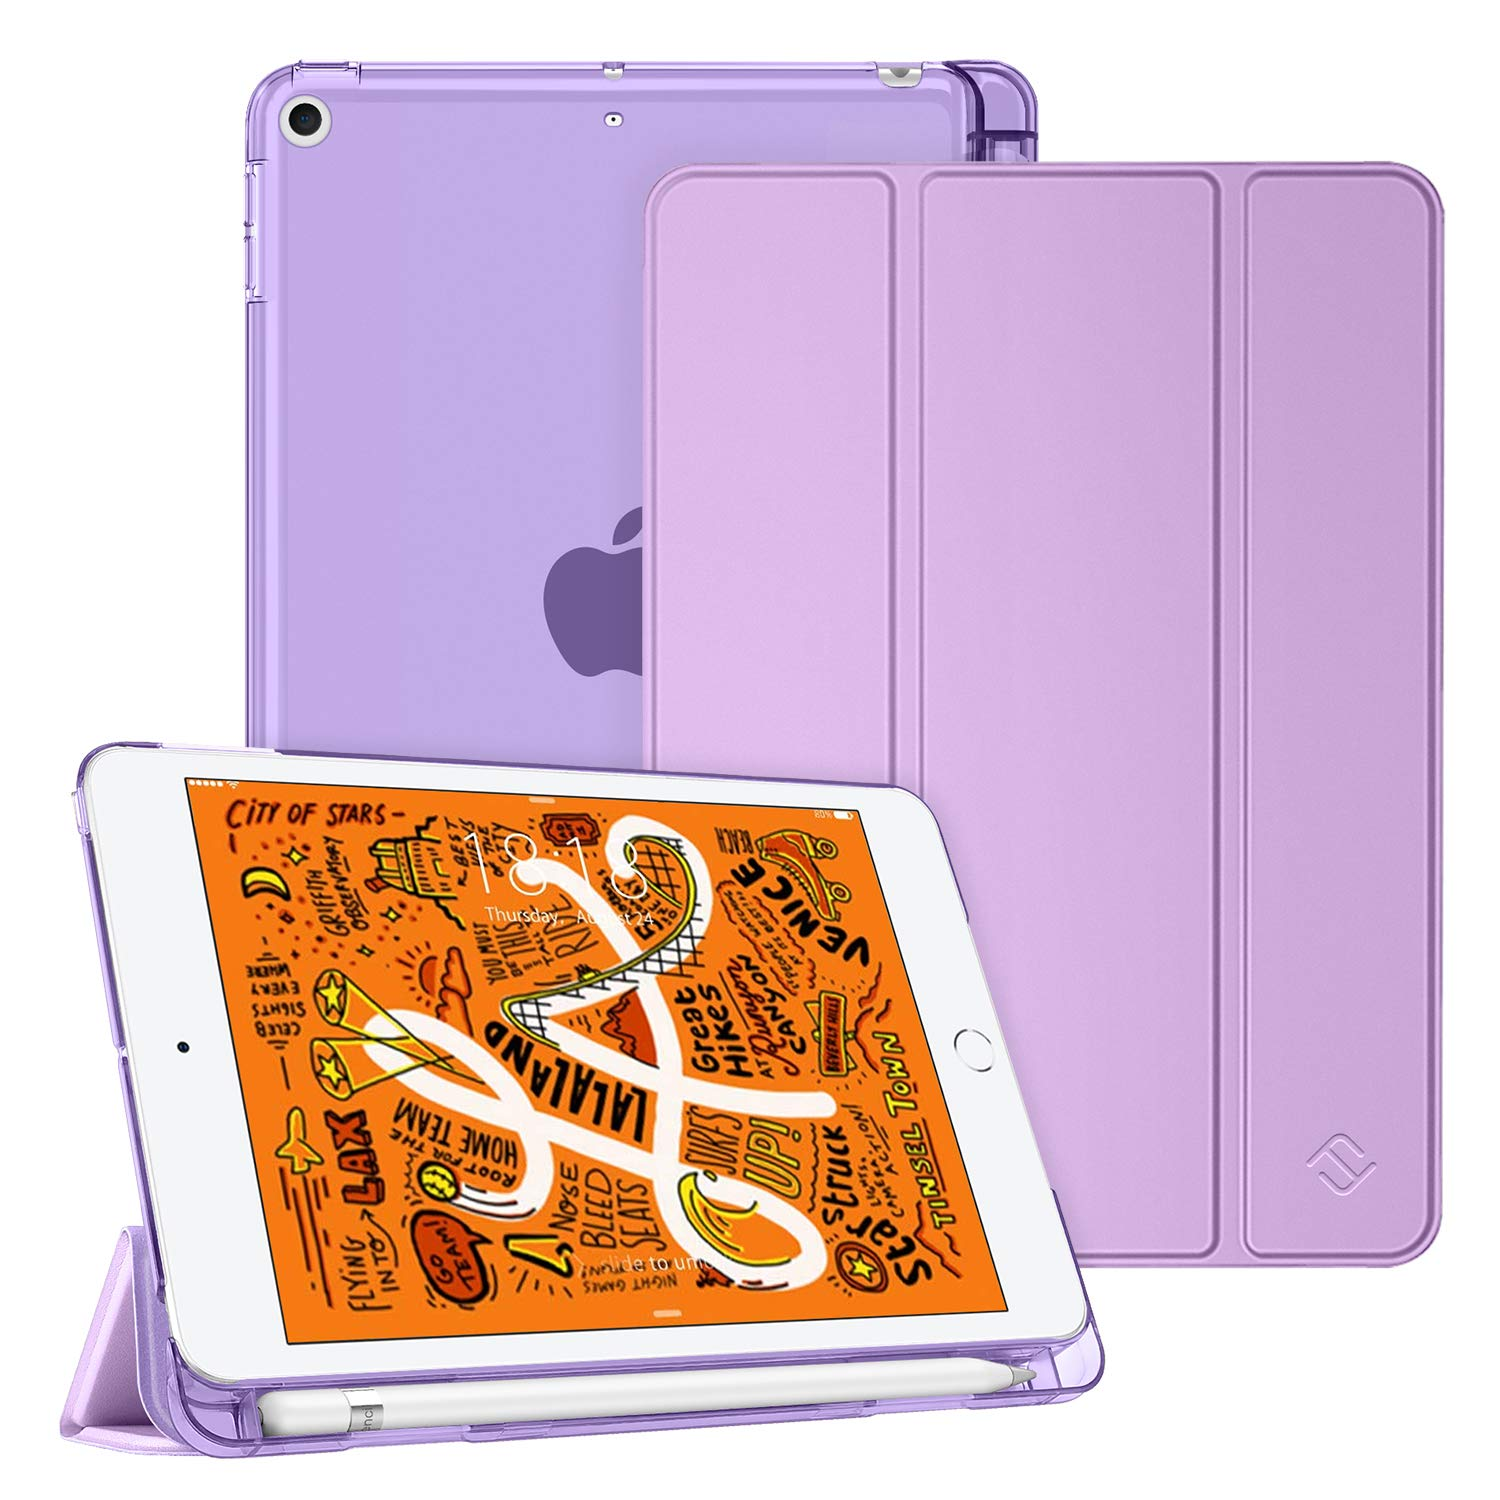 """Fintie Case for iPad Mini 7.9"""" 2019 - Lightweight Slim Shell Cover with Translucent Frosted Back Protector Supports Auto Wake/Sleep for 2019 New iPad Mini 7.9 Inch, Lavender Purple"""